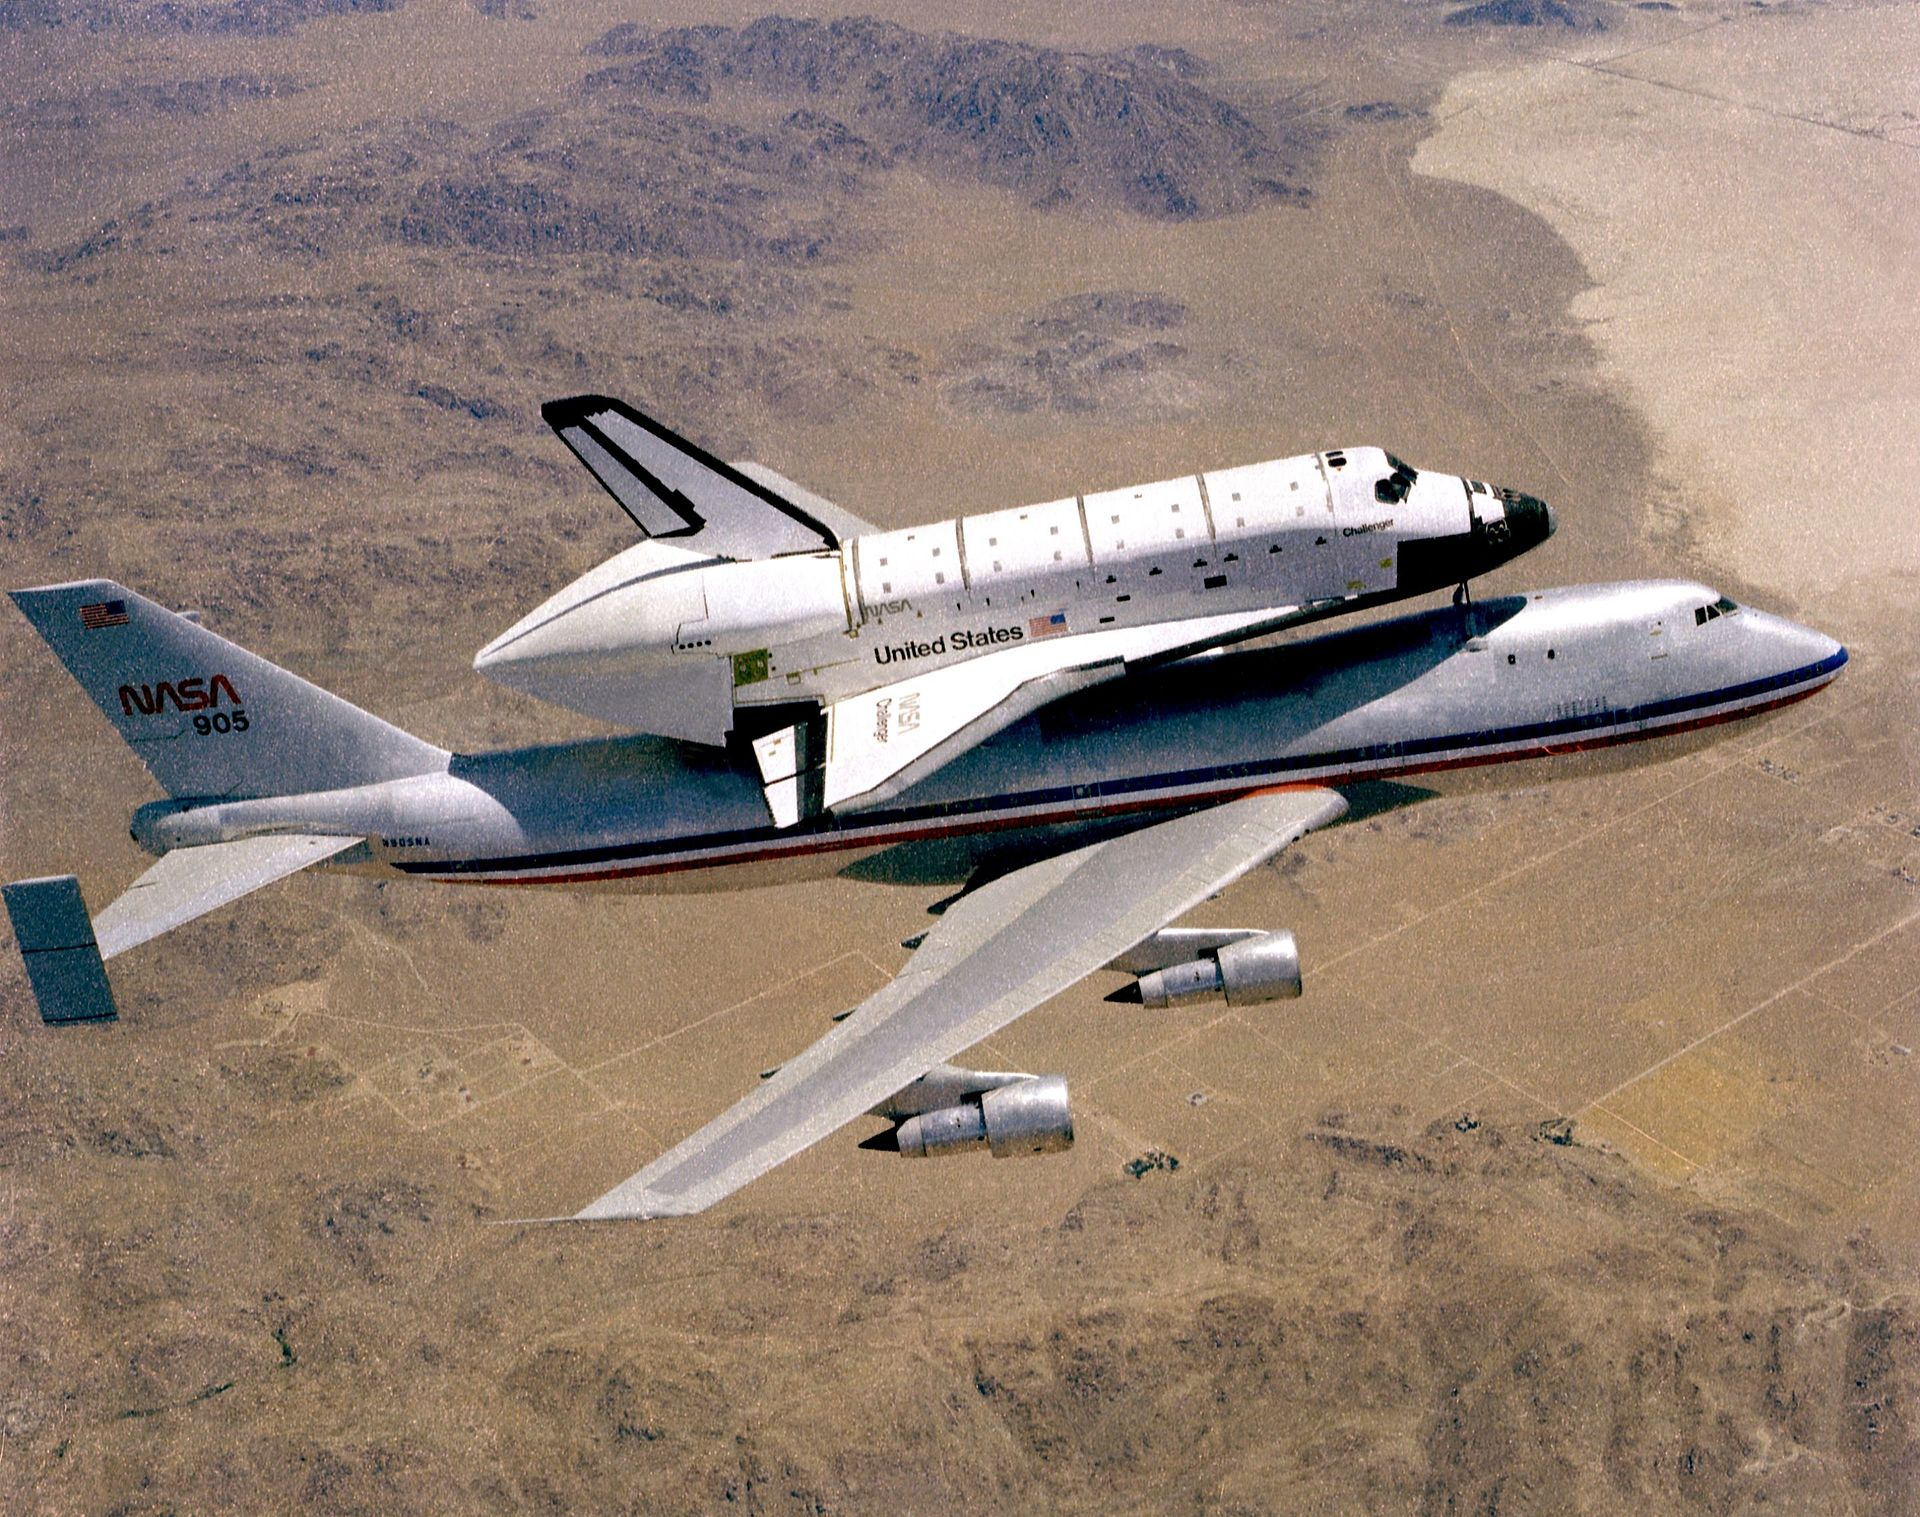 1920px-STS_Challenger_on_747_SCA.jpg